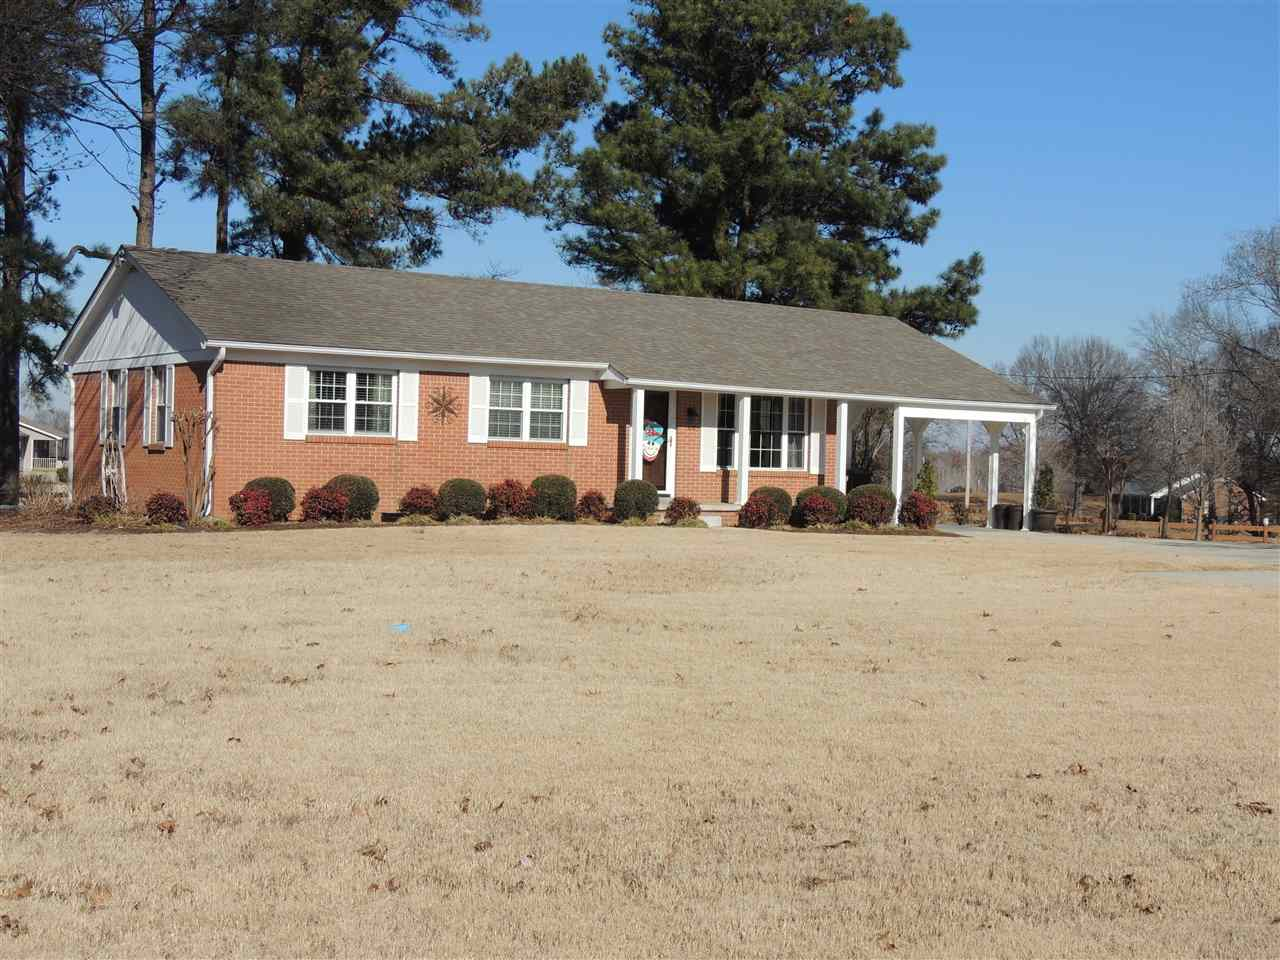 3947 Sharpsferry Rd,Newbern,Tennessee 38059,3 Bedrooms Bedrooms,1 BathroomBathrooms,Residential,3947 Sharpsferry Rd,181007